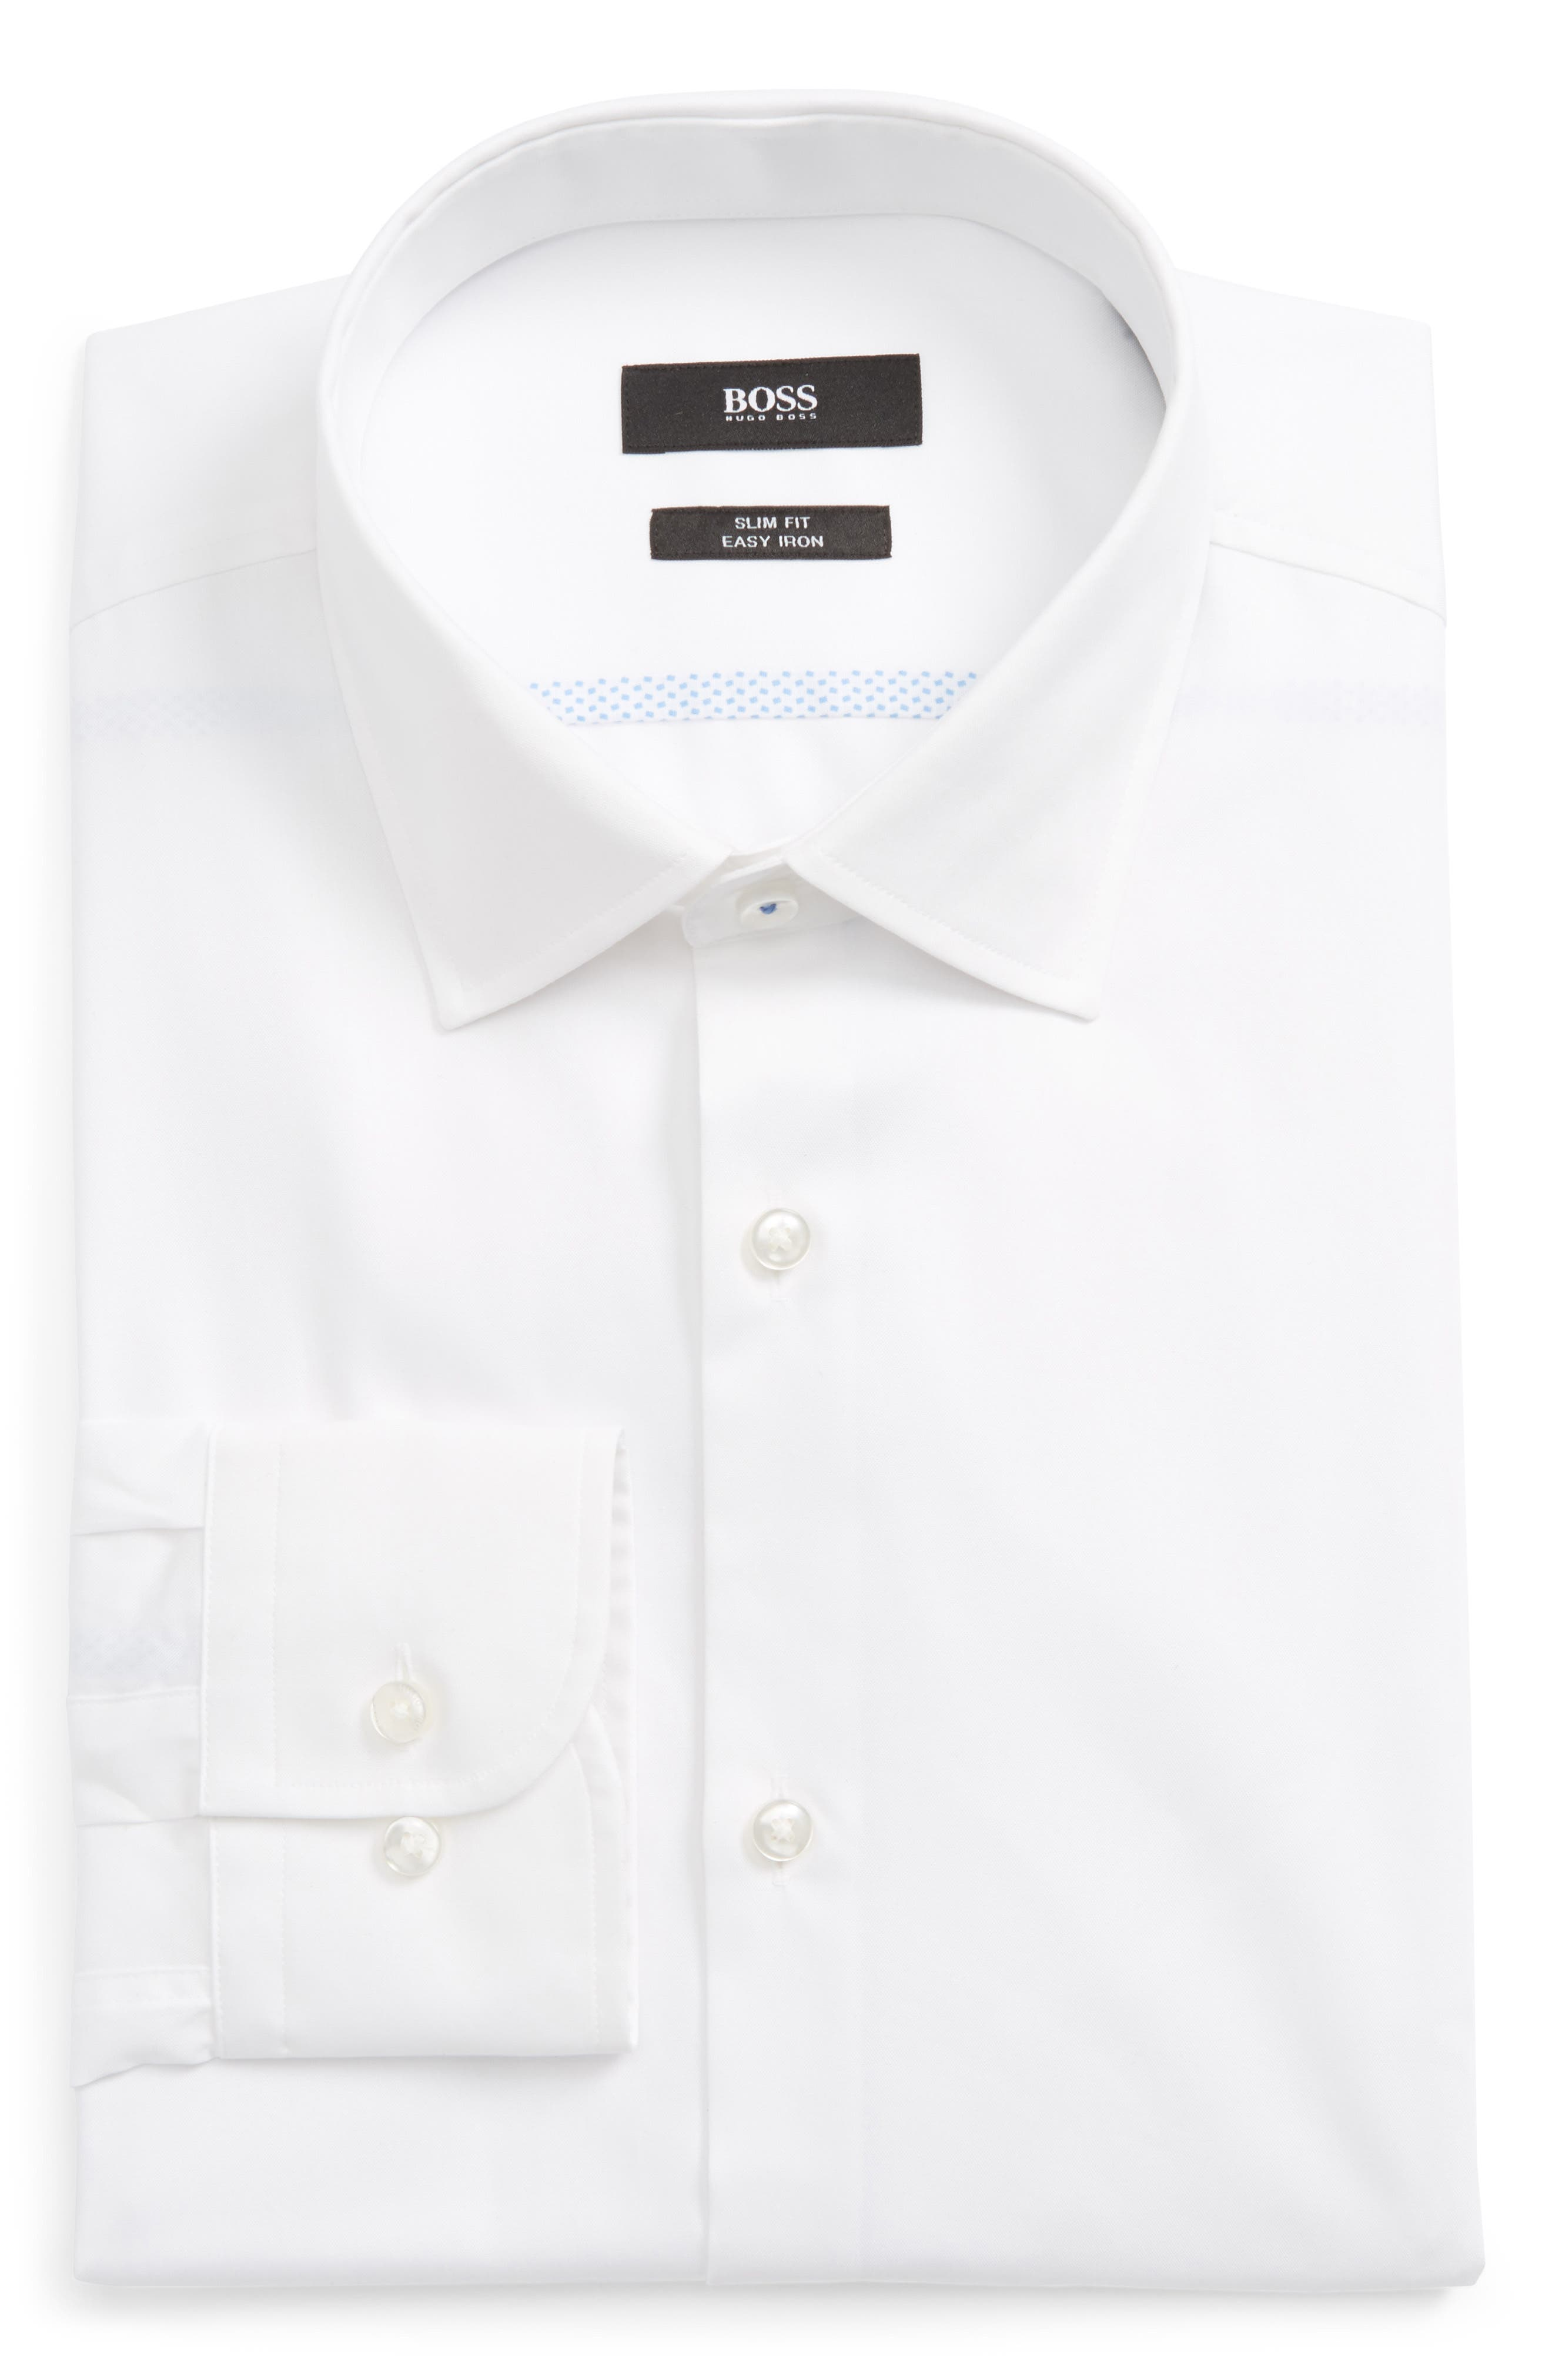 BOSS Jerris Slim Fit Easy Iron Solid Dress Shirt